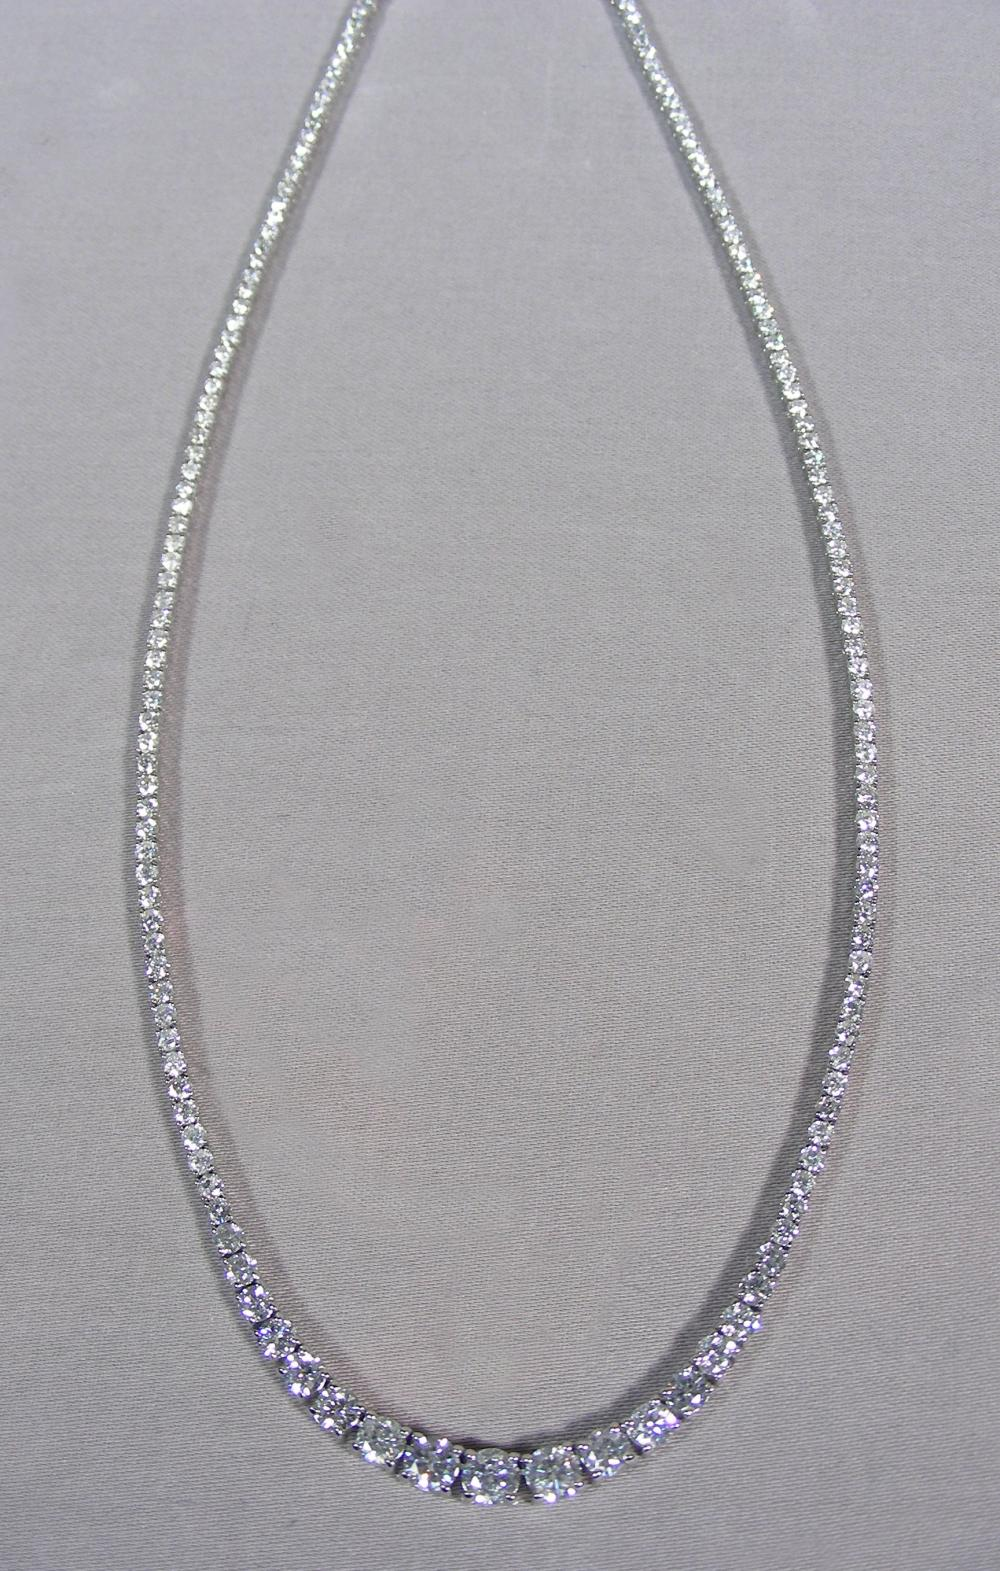 LADIES 18K WHITE GOLD, AND GRADUATED DIAMOND ETERNITY NECKLACE